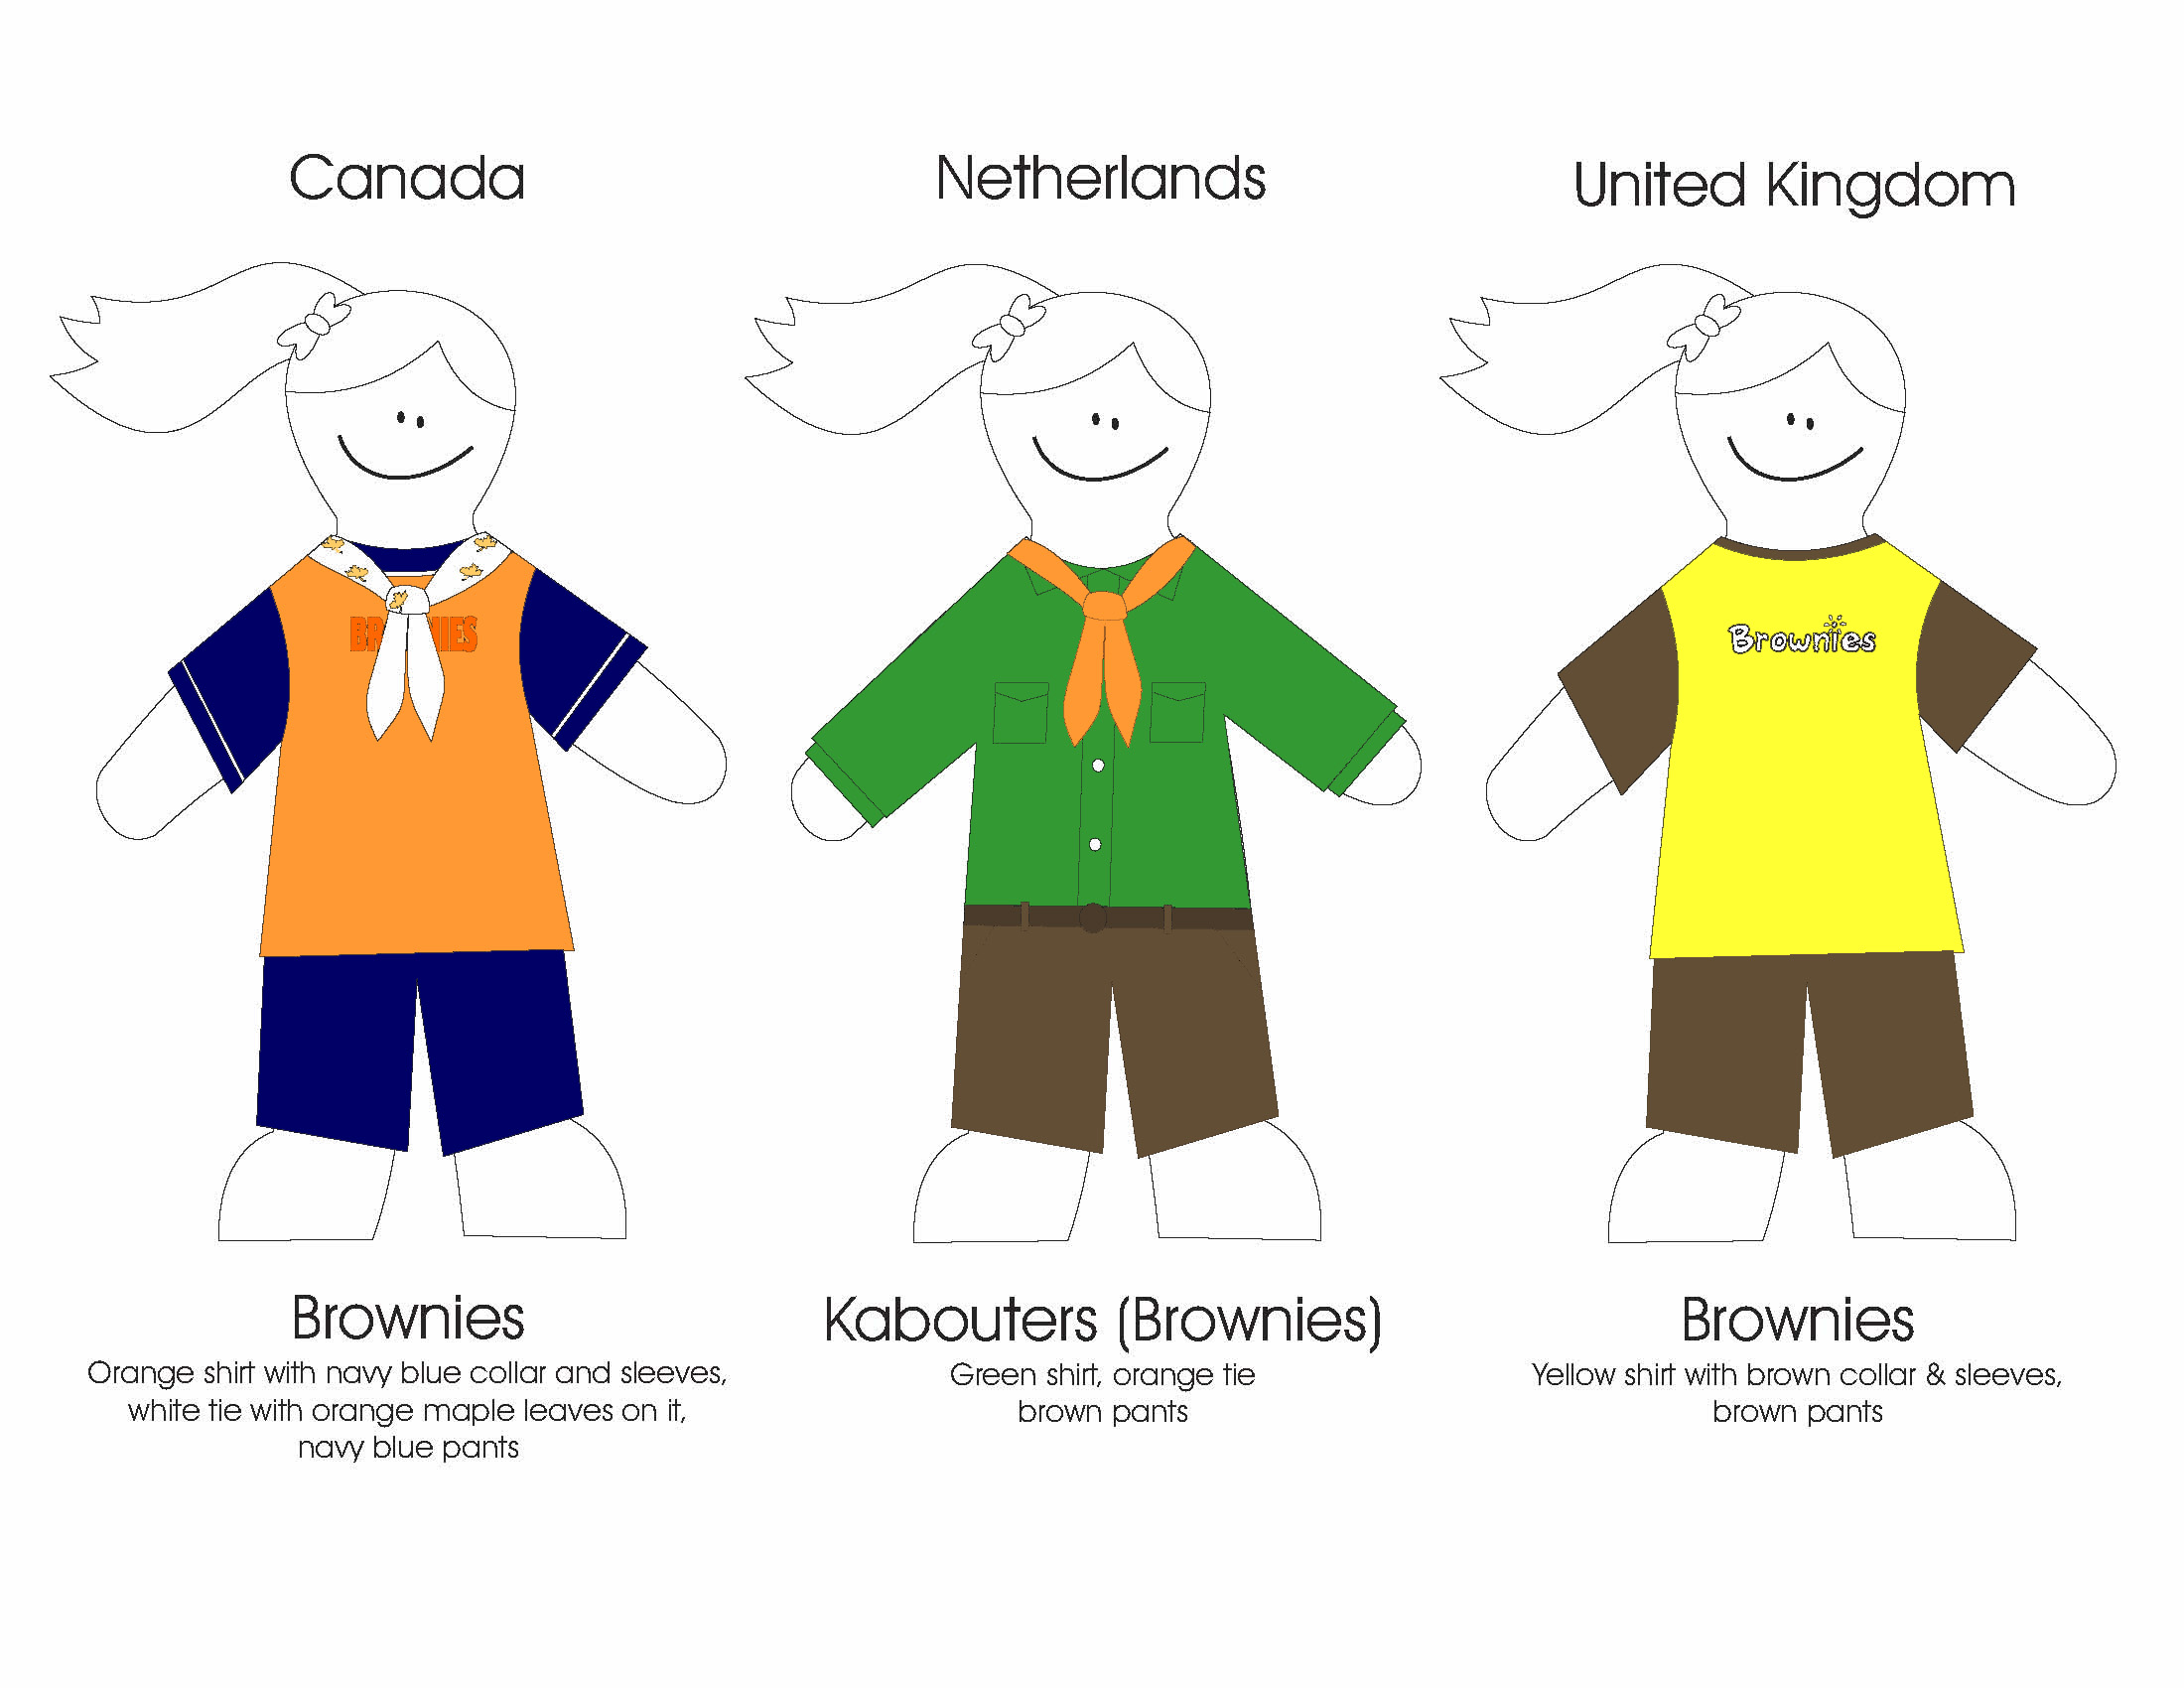 brownie uniform coloring moreover moreover free download printable